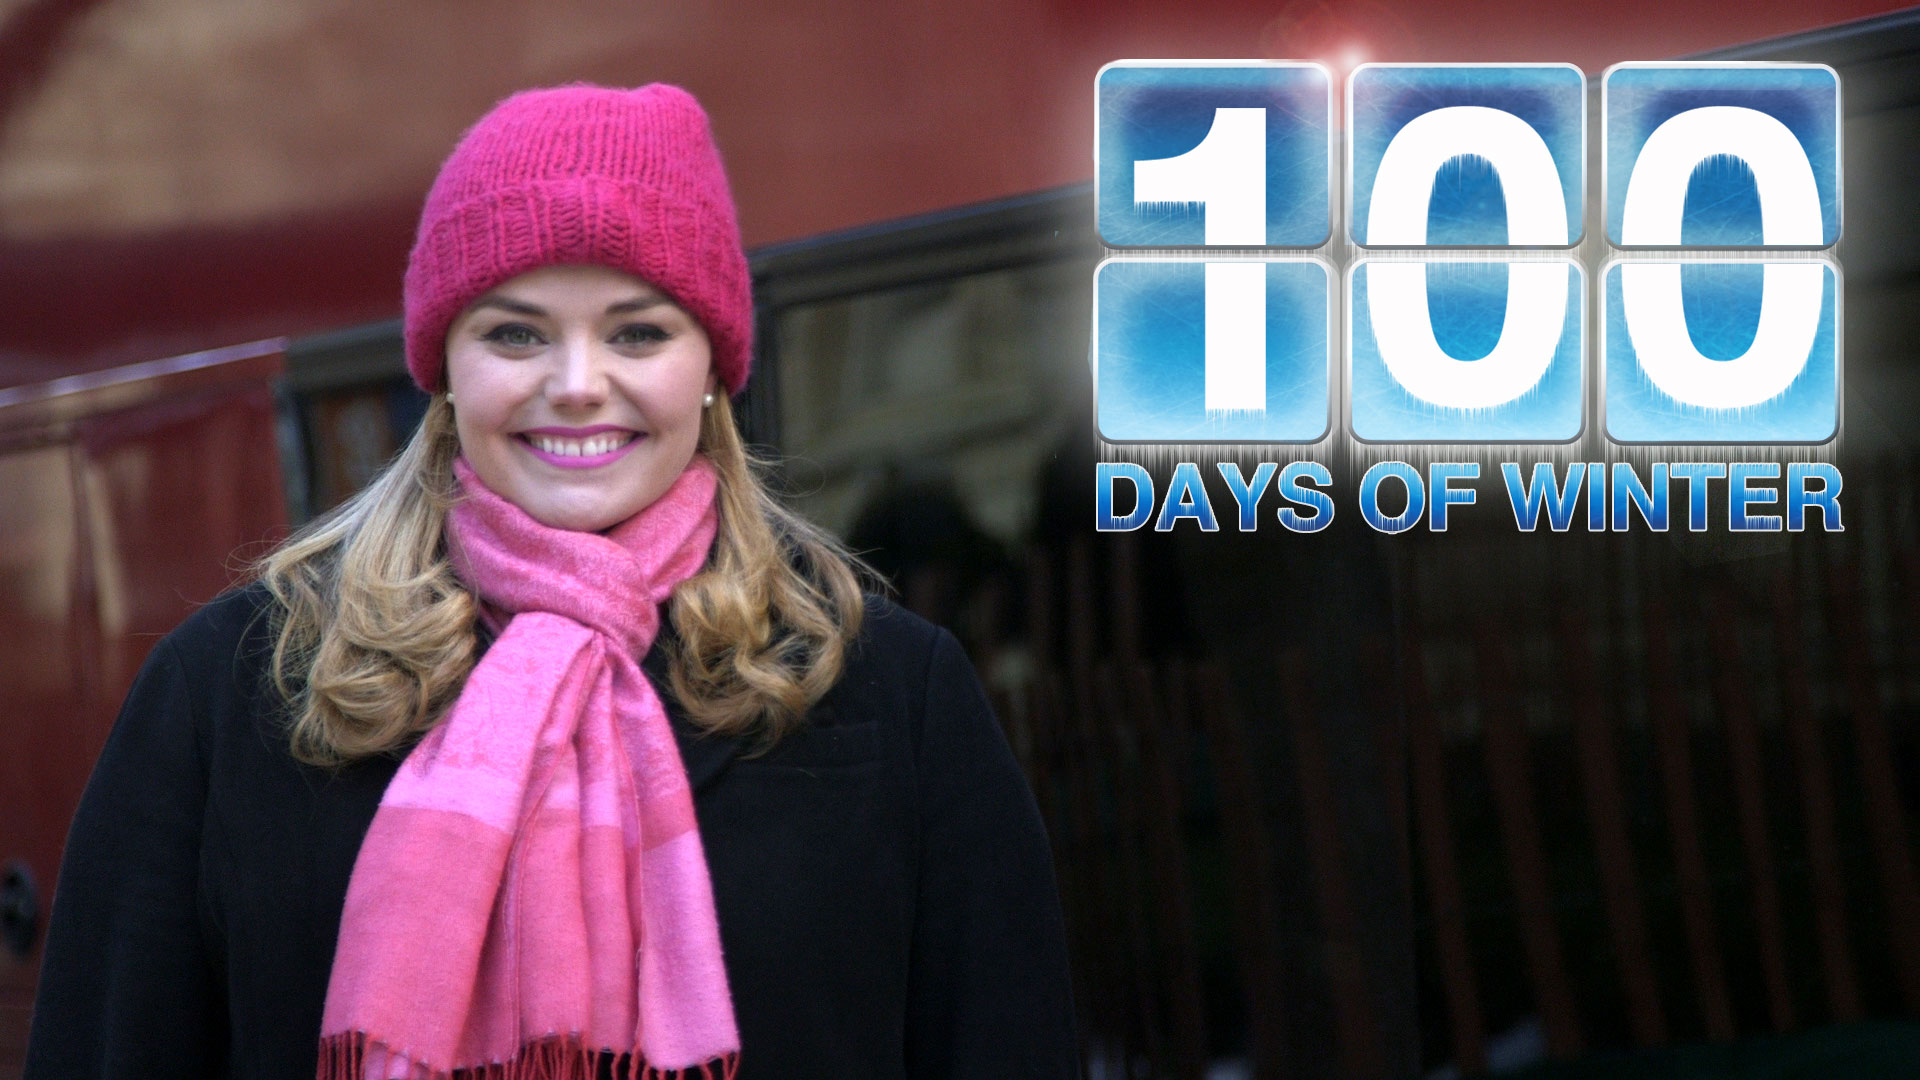 The Tour Guide - 100 Days of Winter